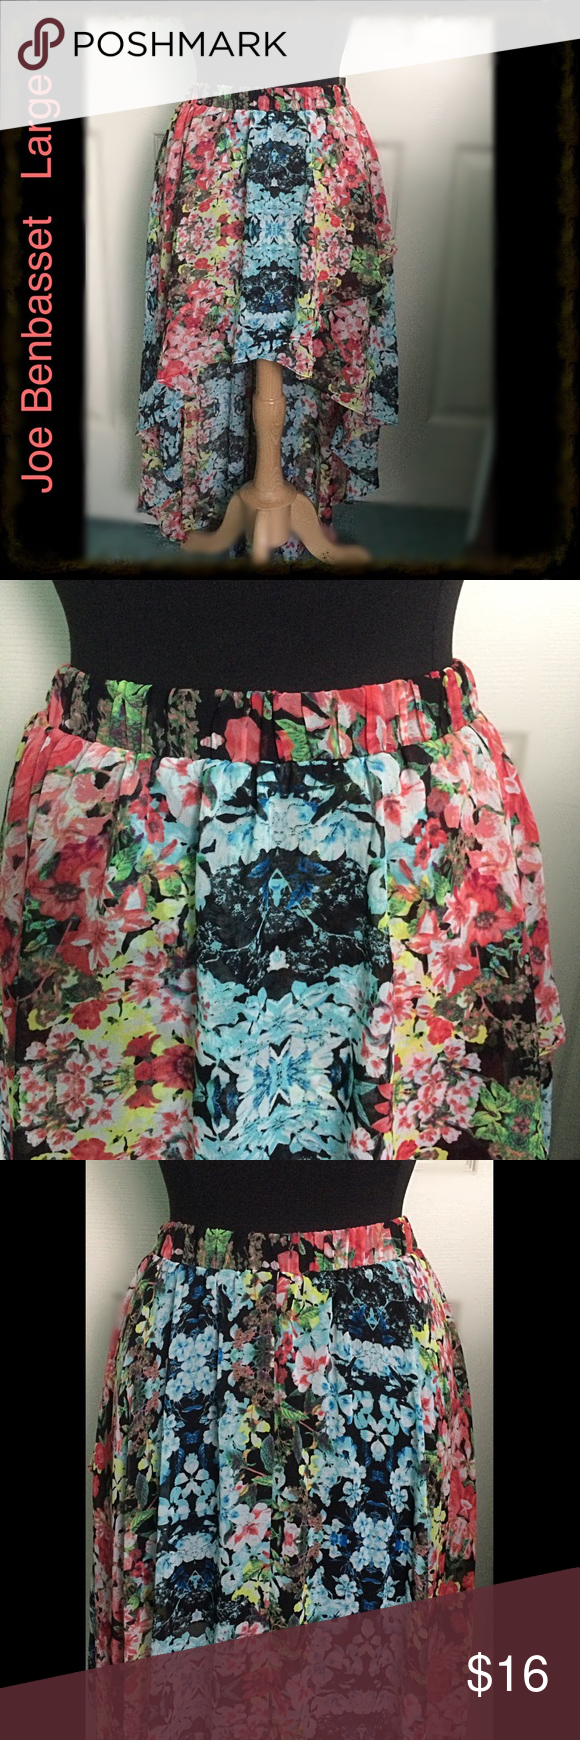 """High - Low Skirt / Pretty Floral / Elastic Waist VERY PRETTY FLORAL PRINT - 100% Poly  - All elastic waist  stretches from 28"""" to 34"""" - Length 15"""" in front & 36"""" in back - Skirt criss crosses in front - Lined 15"""" from waist (rest is sheer) - This is A BEAUTY!!! Joe Benbasset Skirts High Low"""